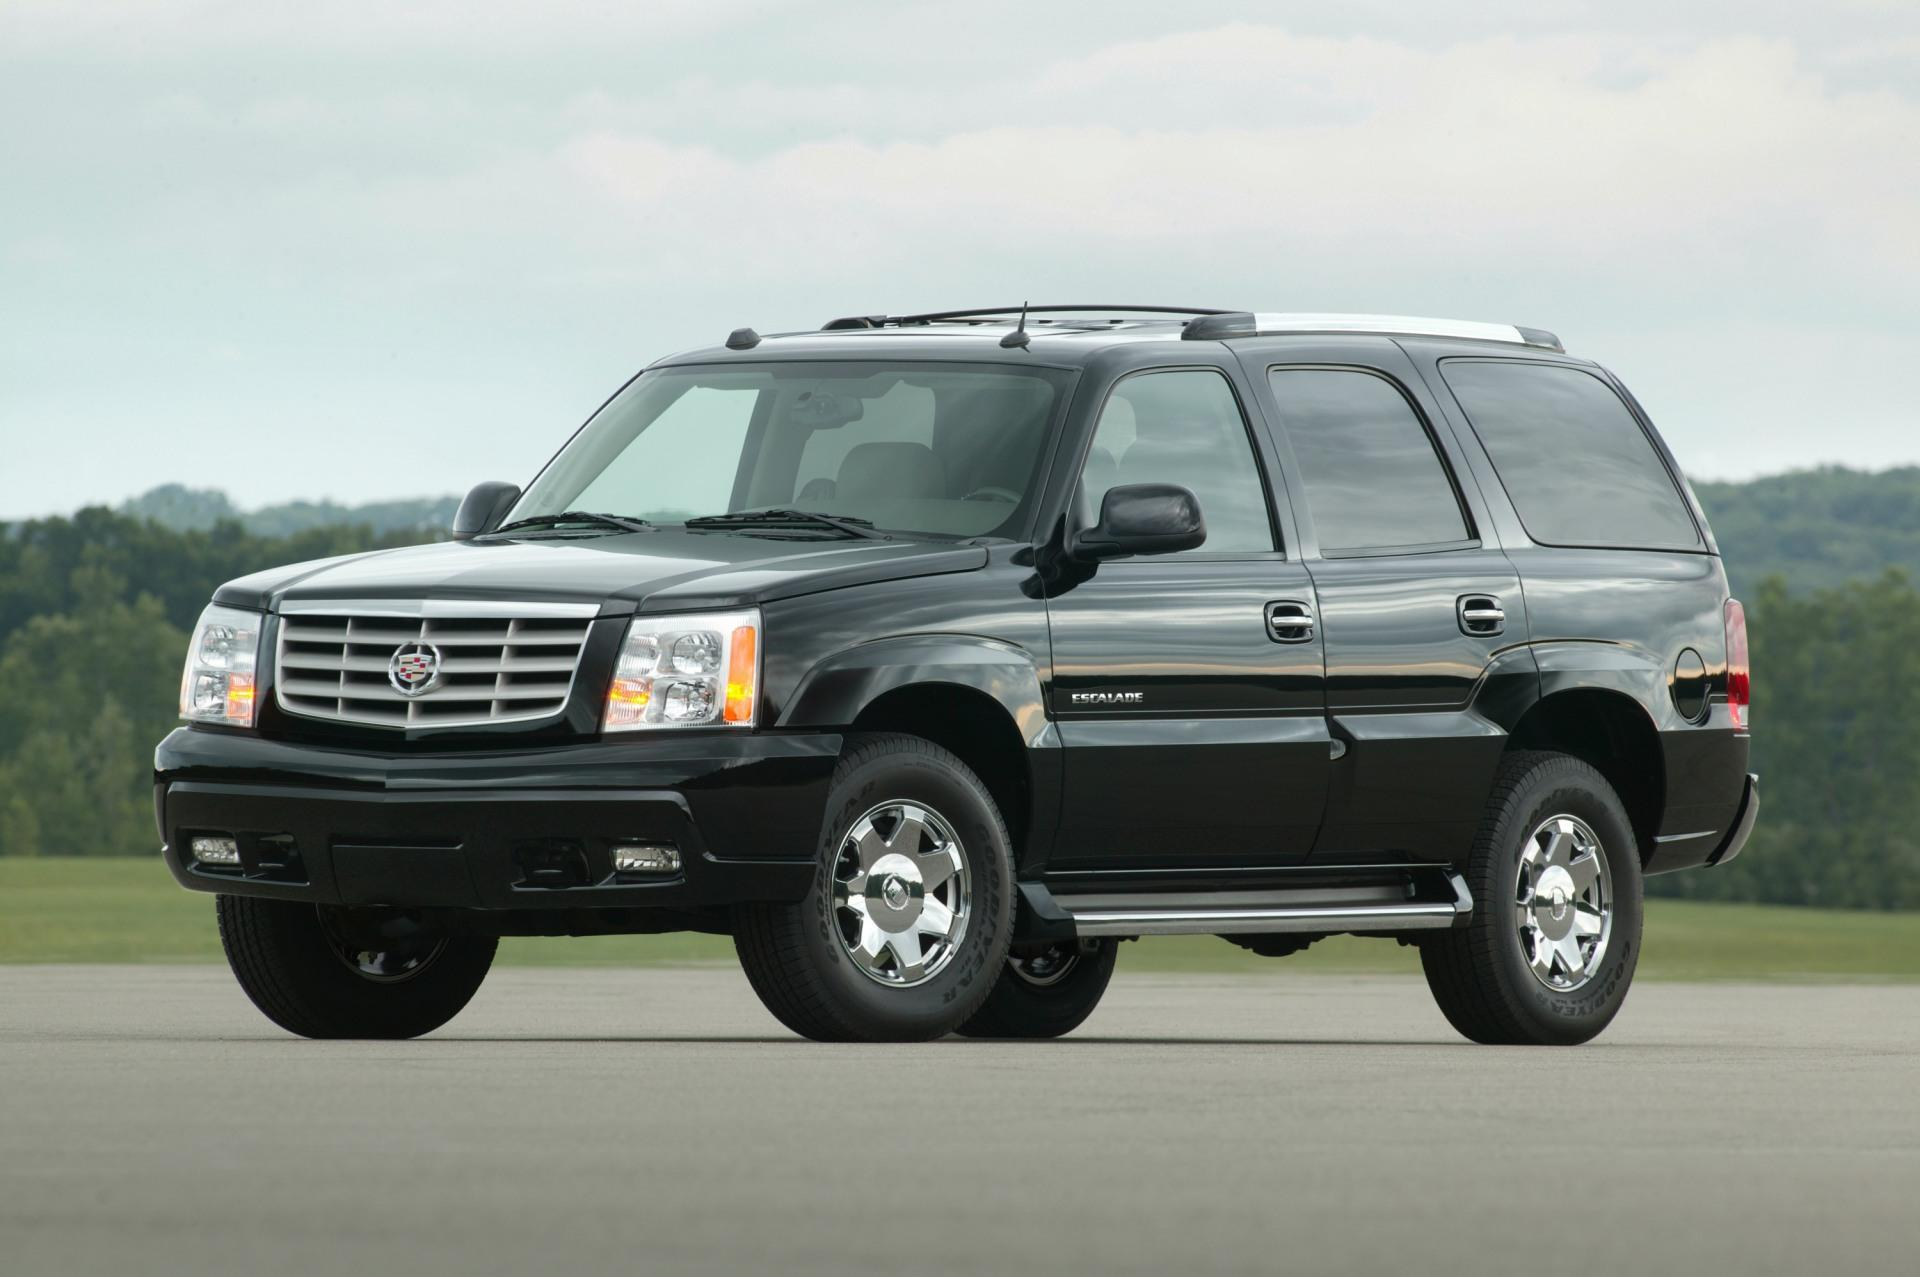 a crew pin trip sale the escalade cab cadillac long with comfortable ext for going